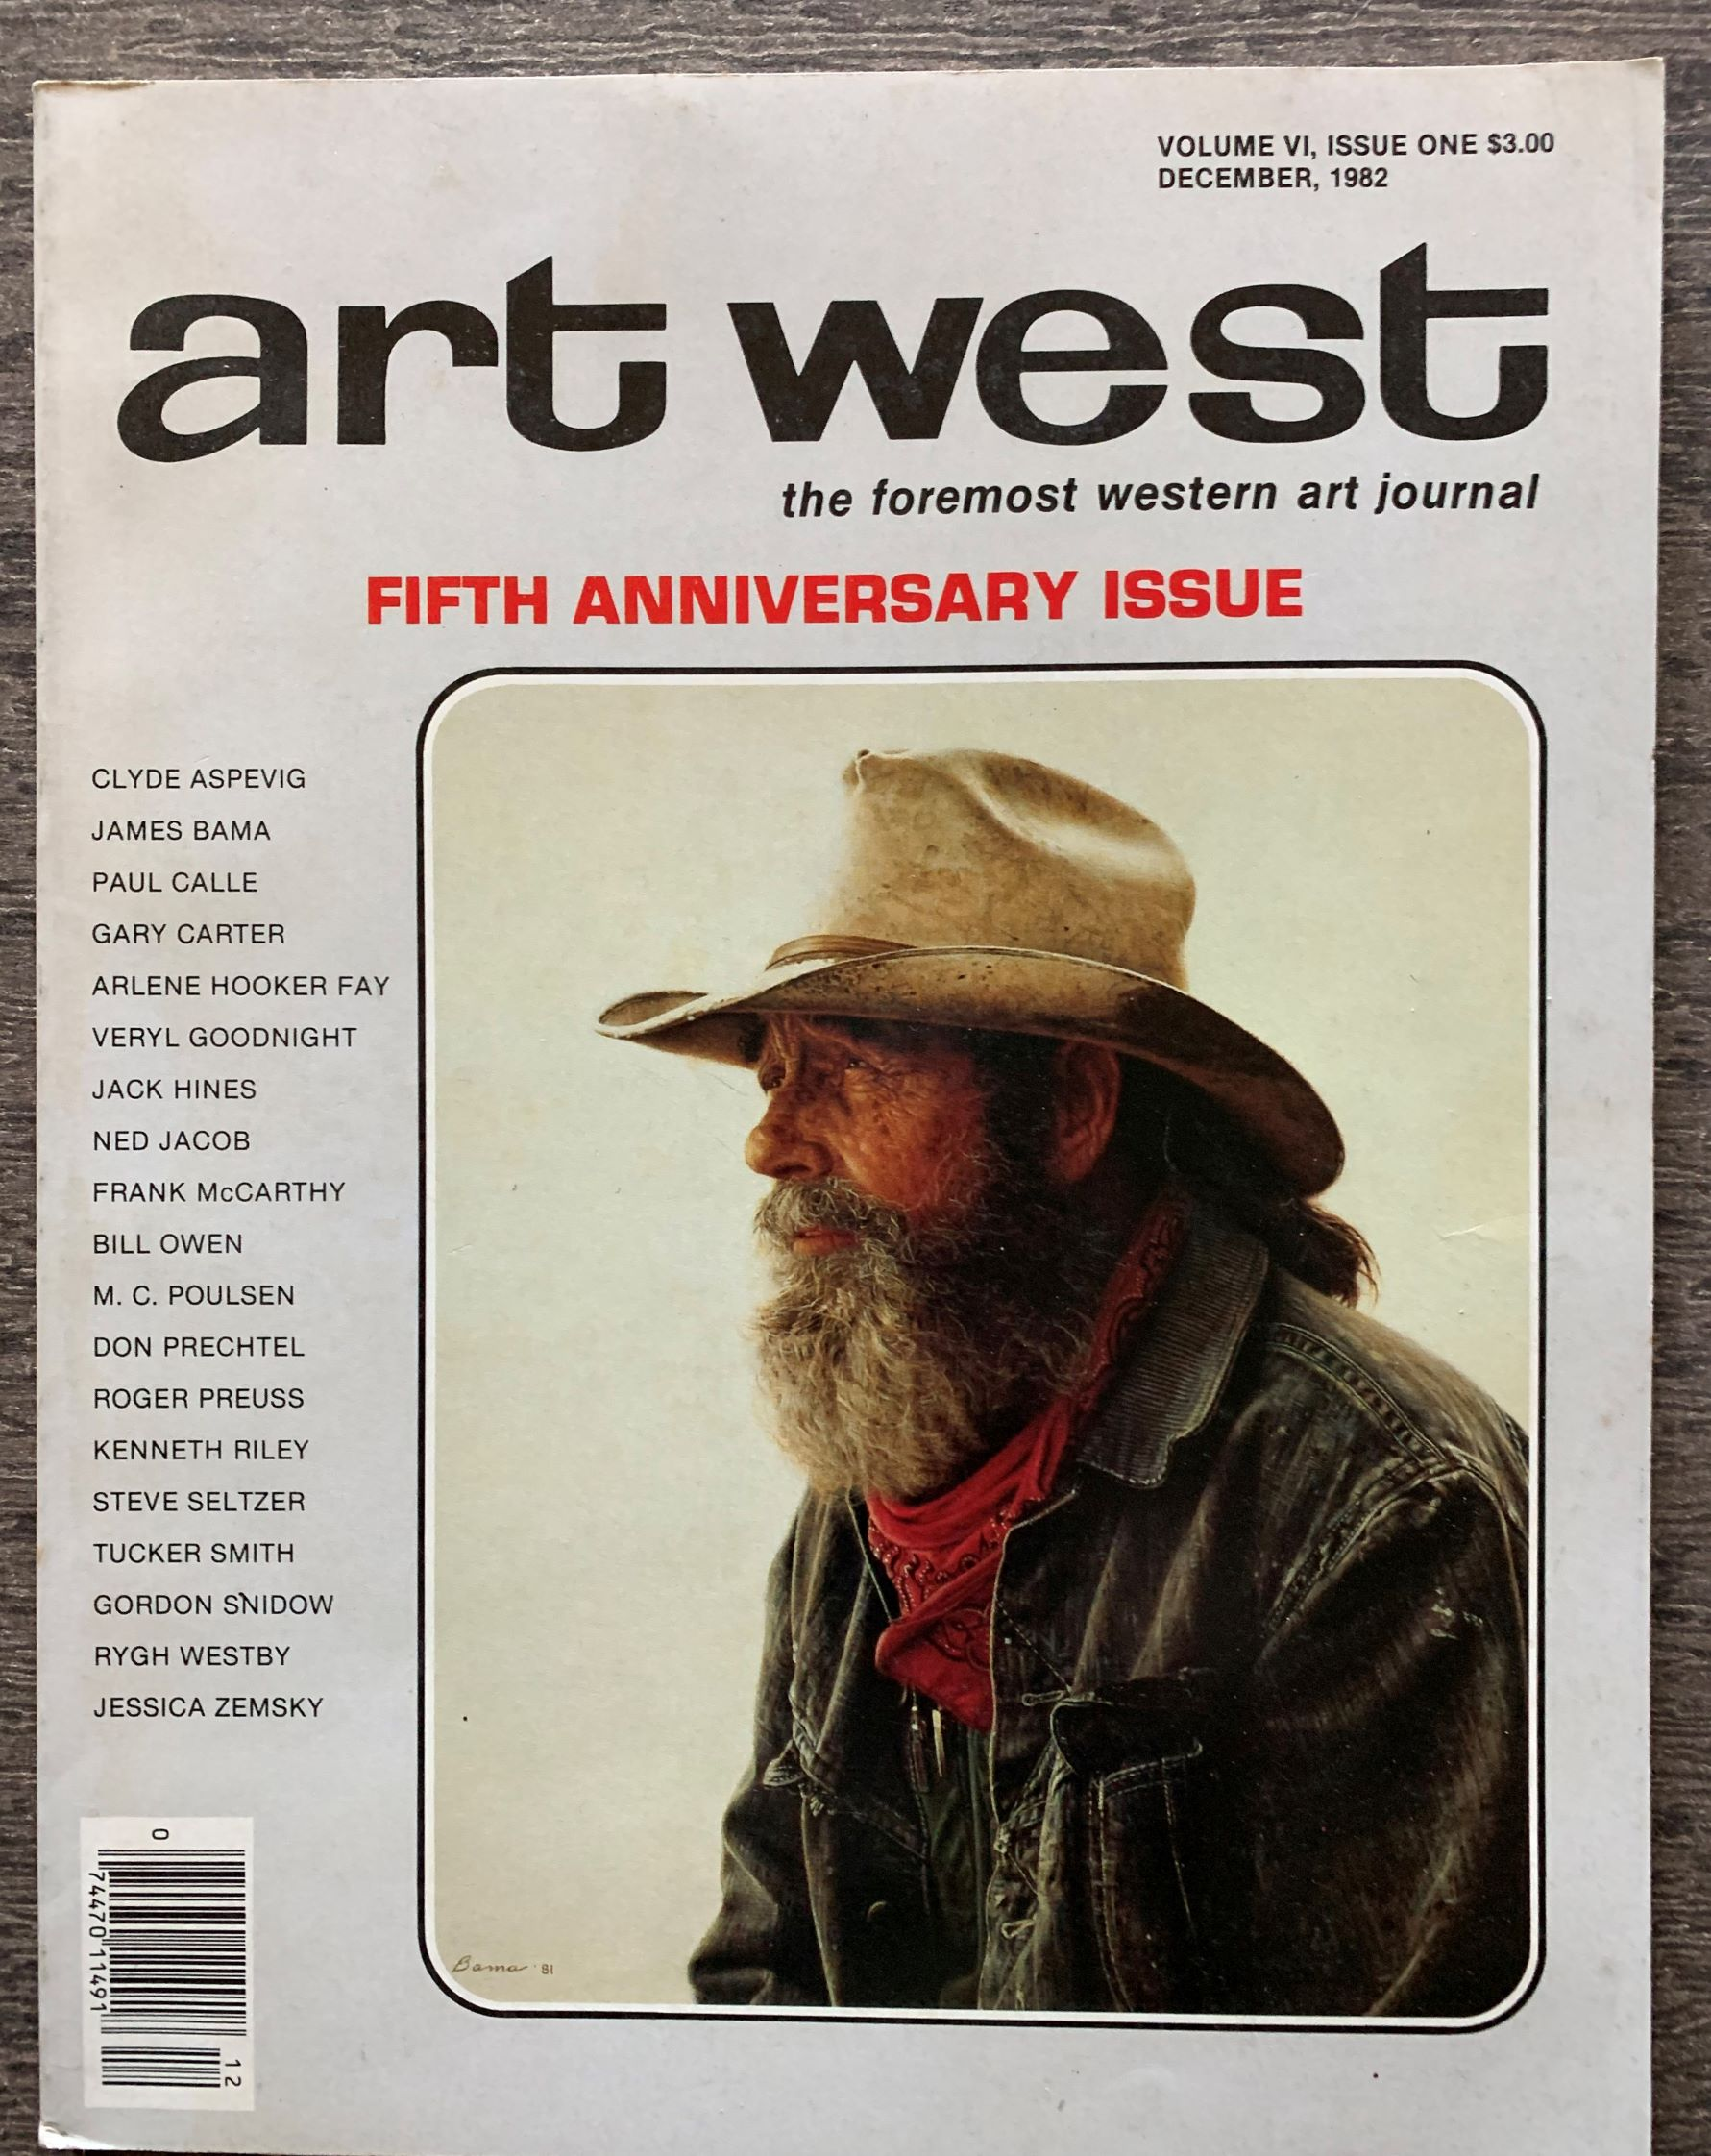 Image for art west, the formost western art journal, FIFTH ANNIVERSARY ISSUE; volume VI, issue one, December, 1982.